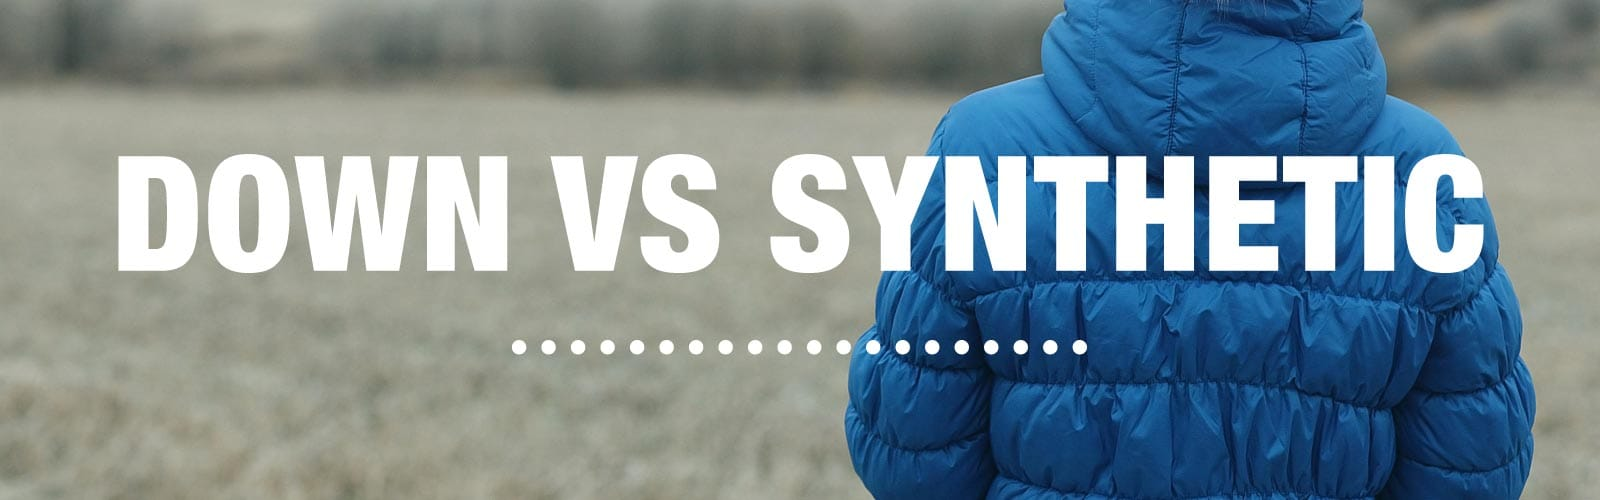 Down vs Synthetic Guide